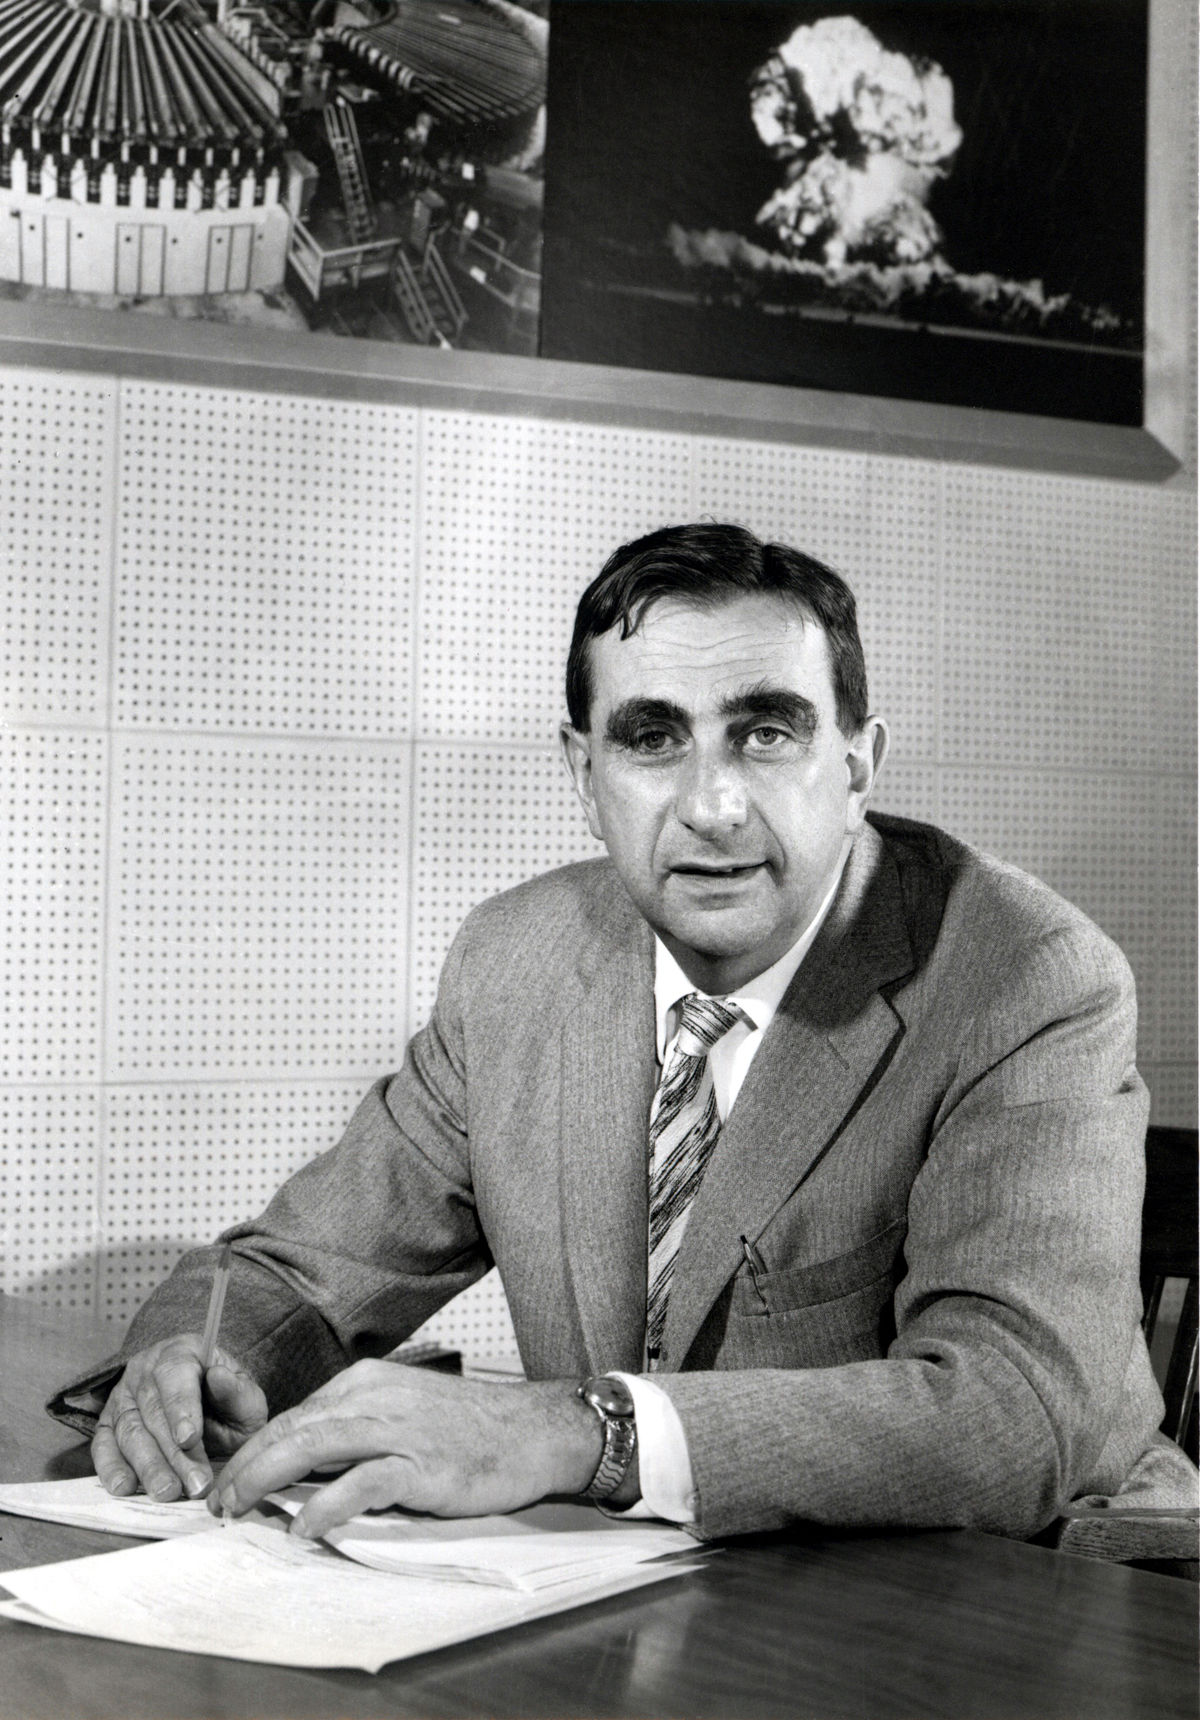 1200px-EdwardTeller1958_fewer_smudges -